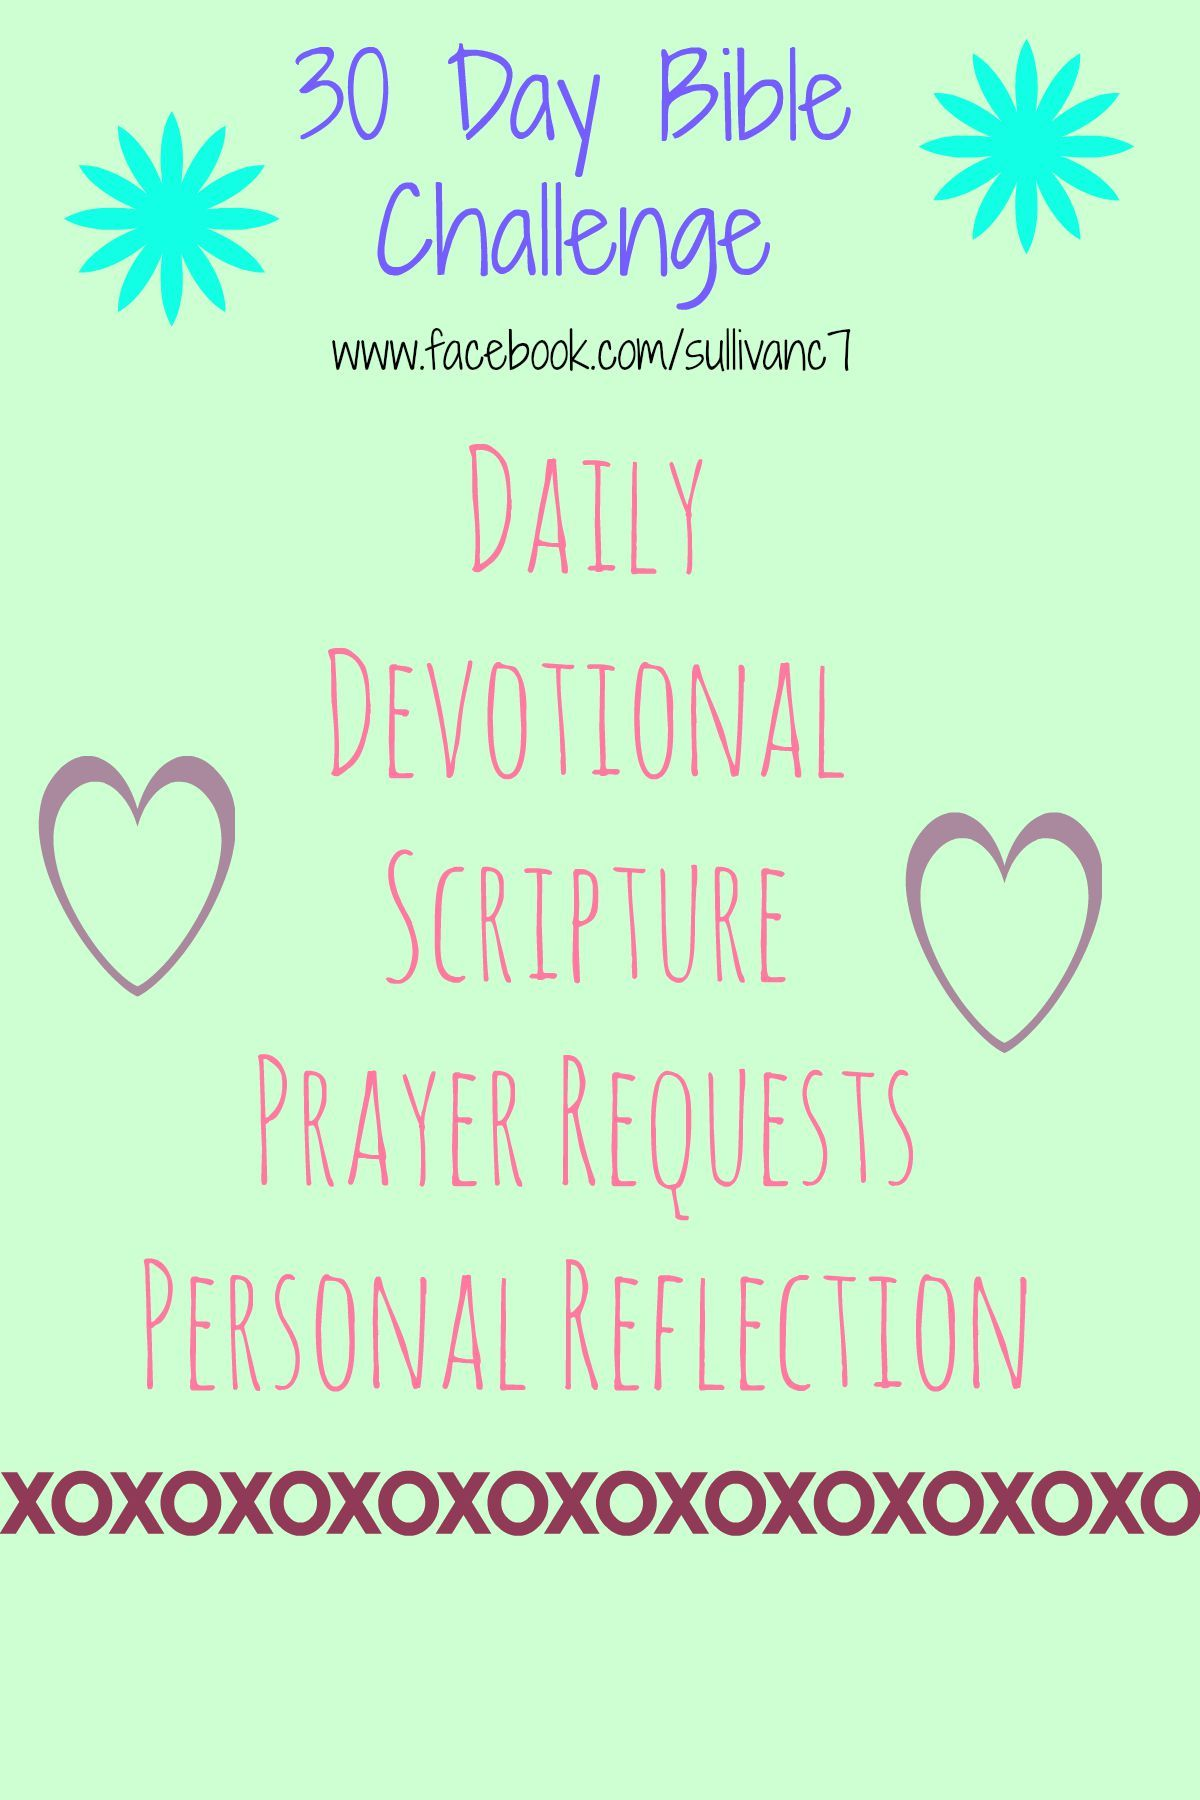 30 Day bible challenge! Click the image above to join in the fun!